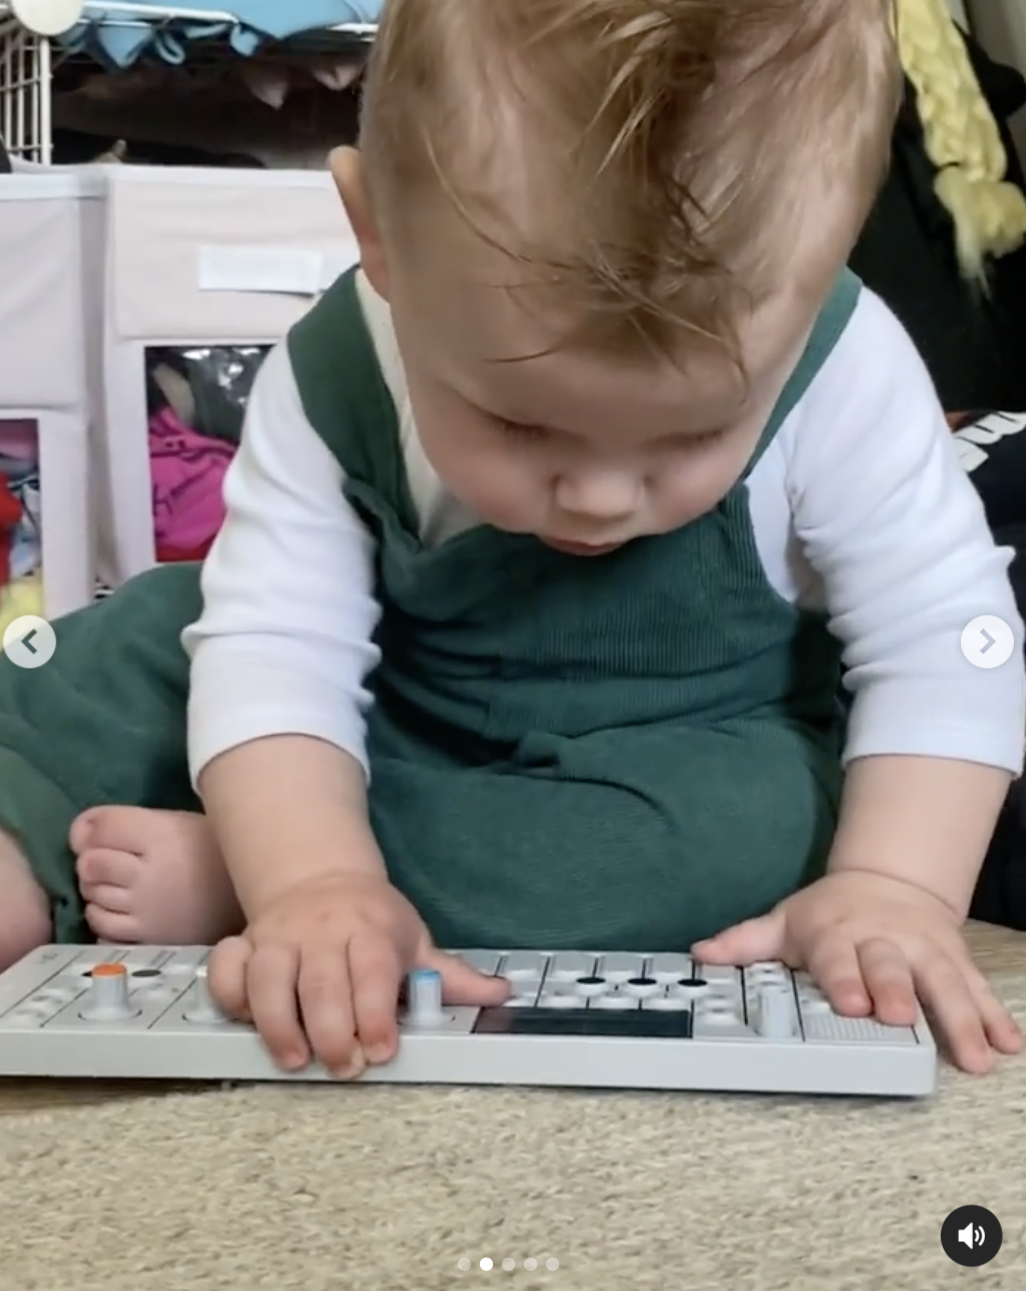 Lil X looking at the keyboard